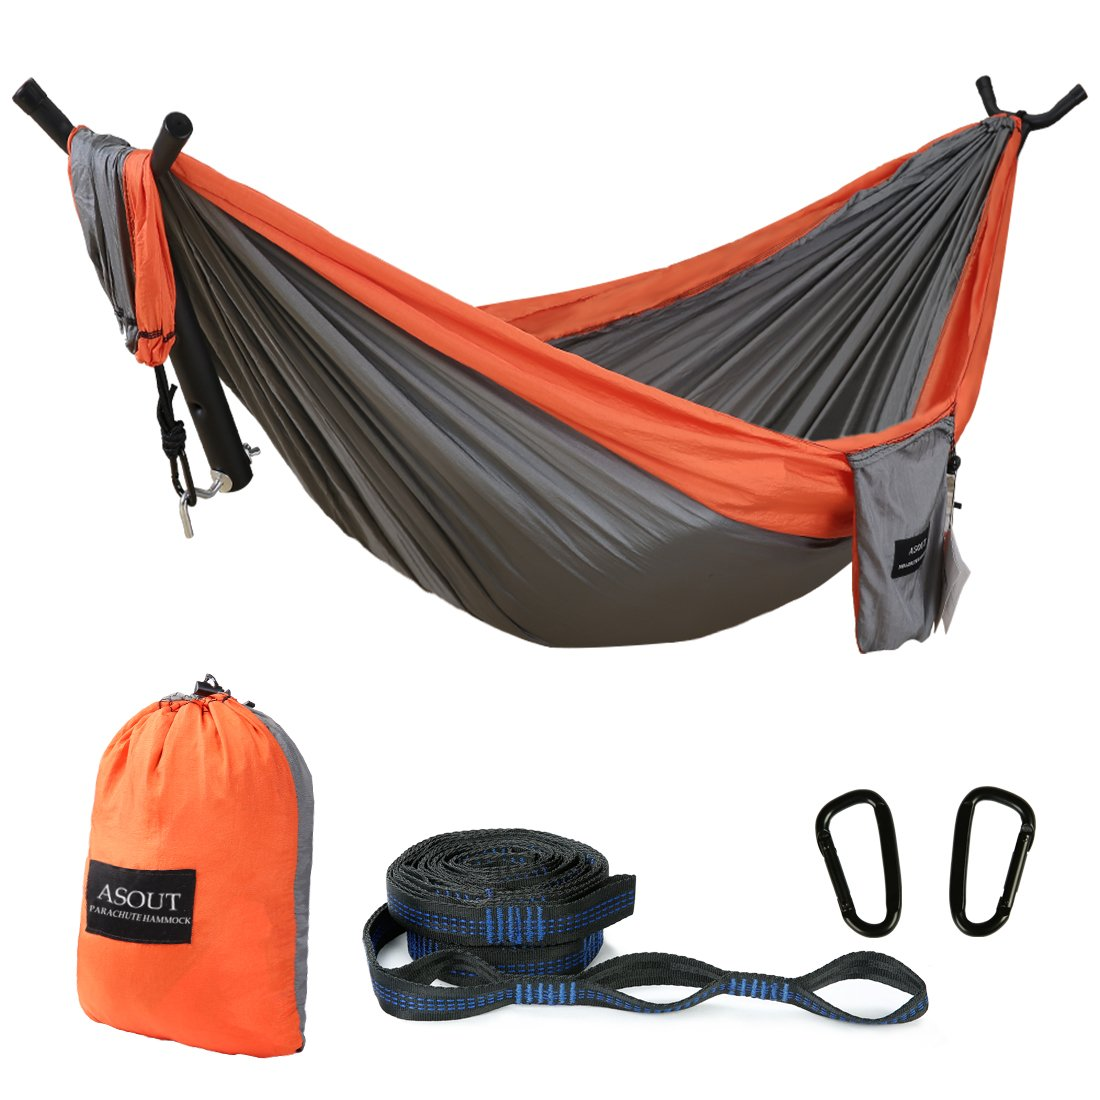 ASOUT Outdoor Single Double Camping Hammock with Tree Straps, Portable Lightweight Parachute Nylon Hammock for Hiking, Backpacking, Picnic,Travel and Other Outdoor Sports by ASOUT